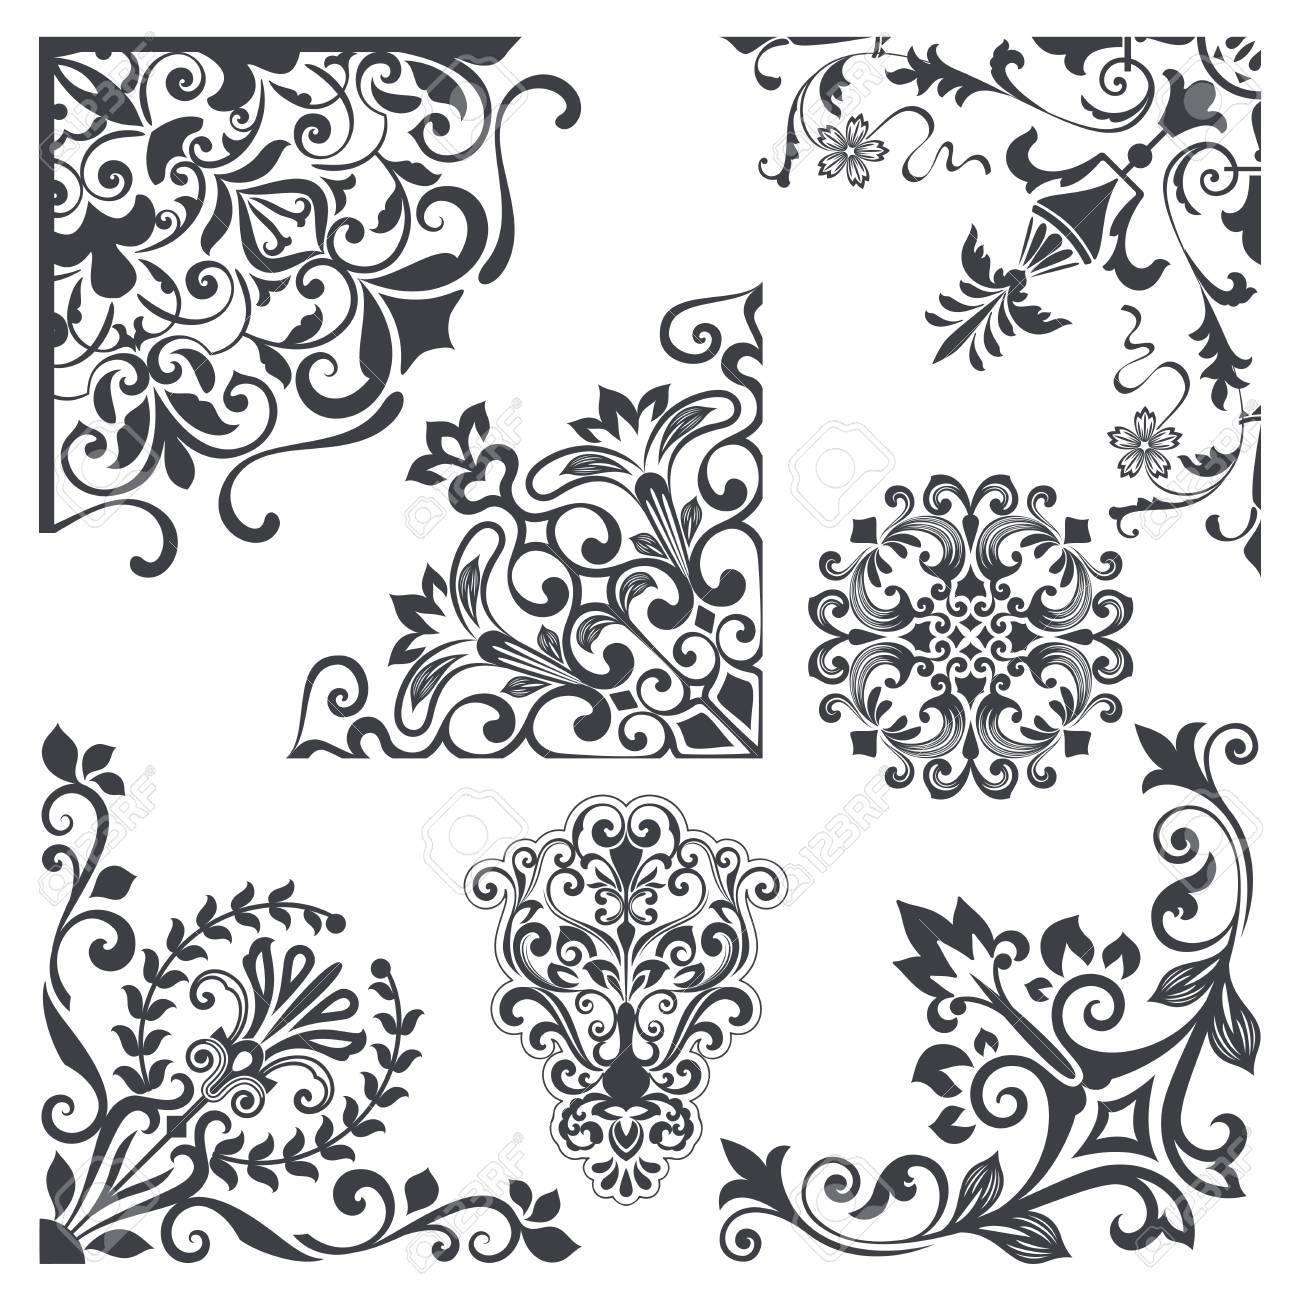 Get Corner Decorative Floral Vector